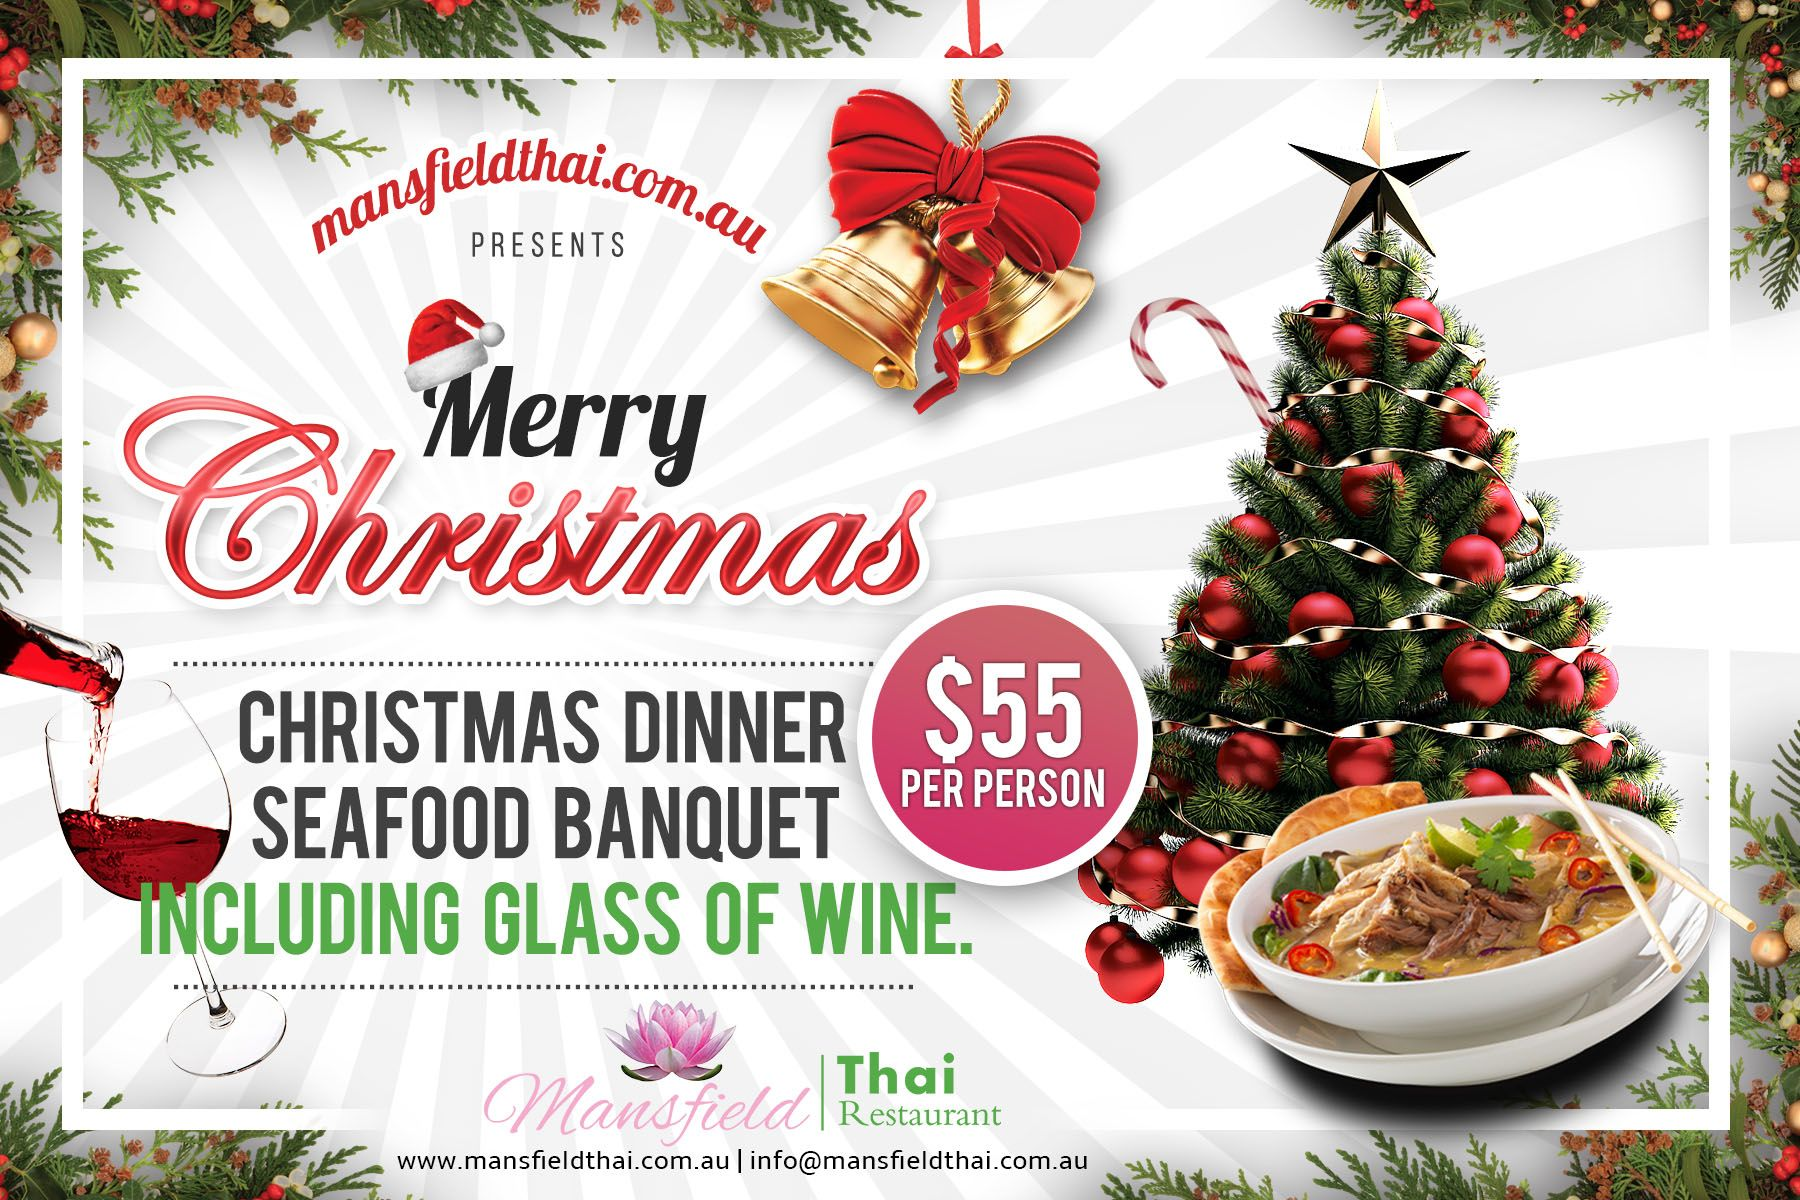 Special Christmas Offer Christmas Dinner Seafood Banquet